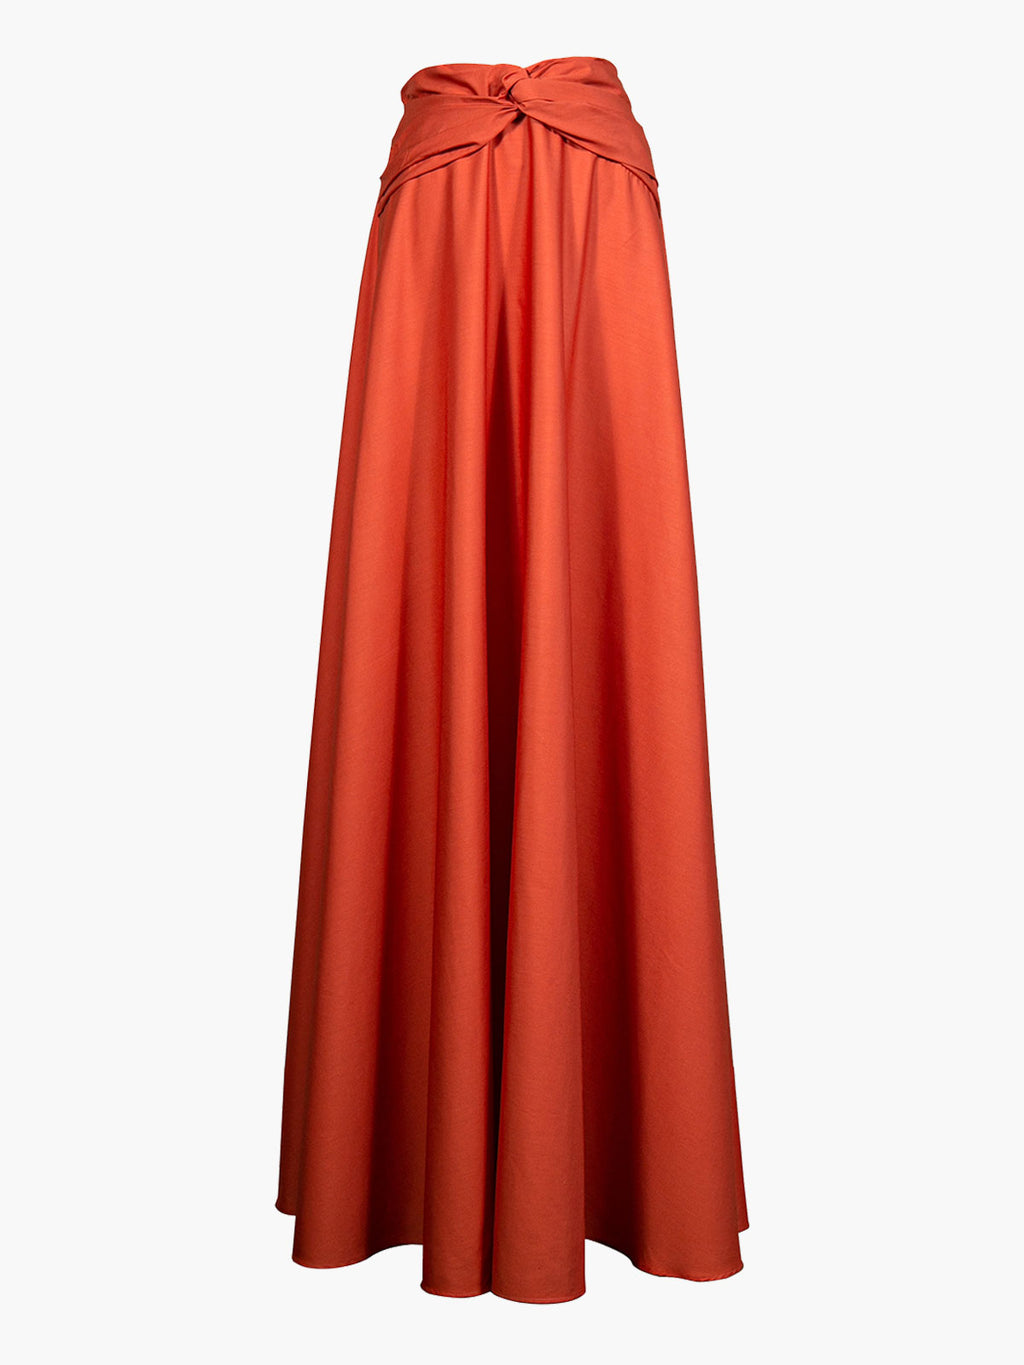 Eterea Skirt | Terracotta